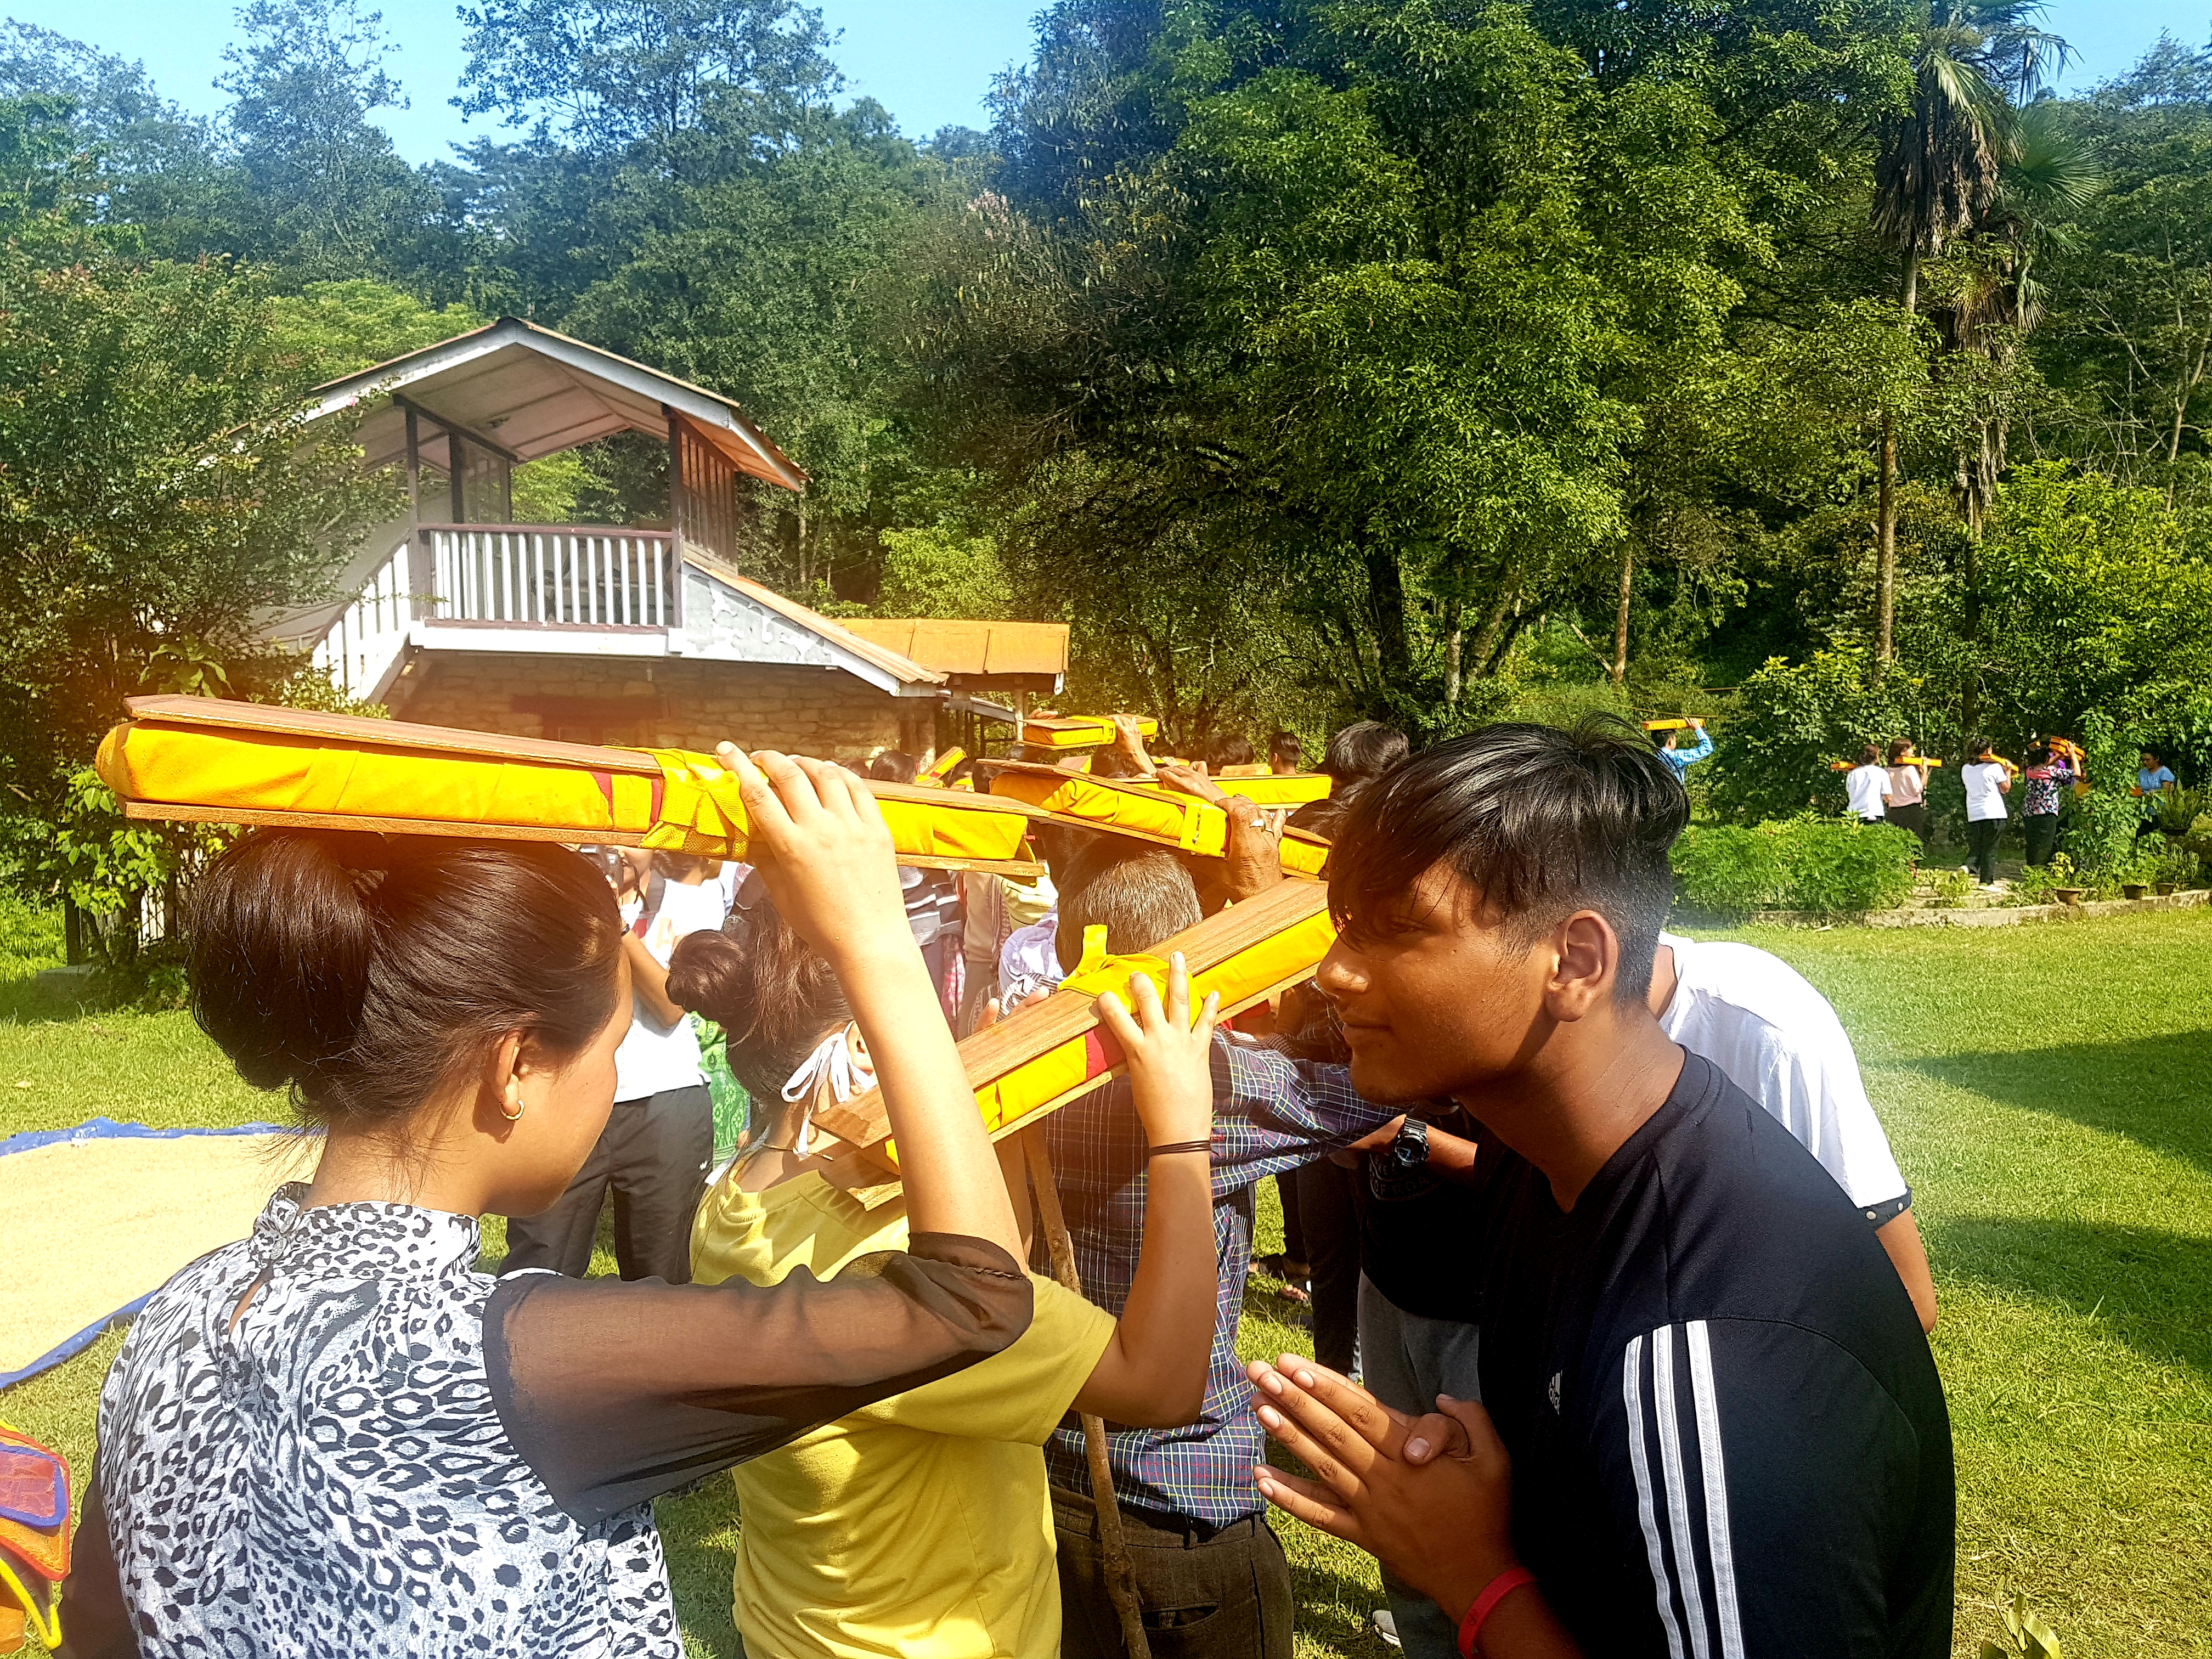 Students on School Trip experience the The Saga Dawa Celebrations in Eastern Himalayas